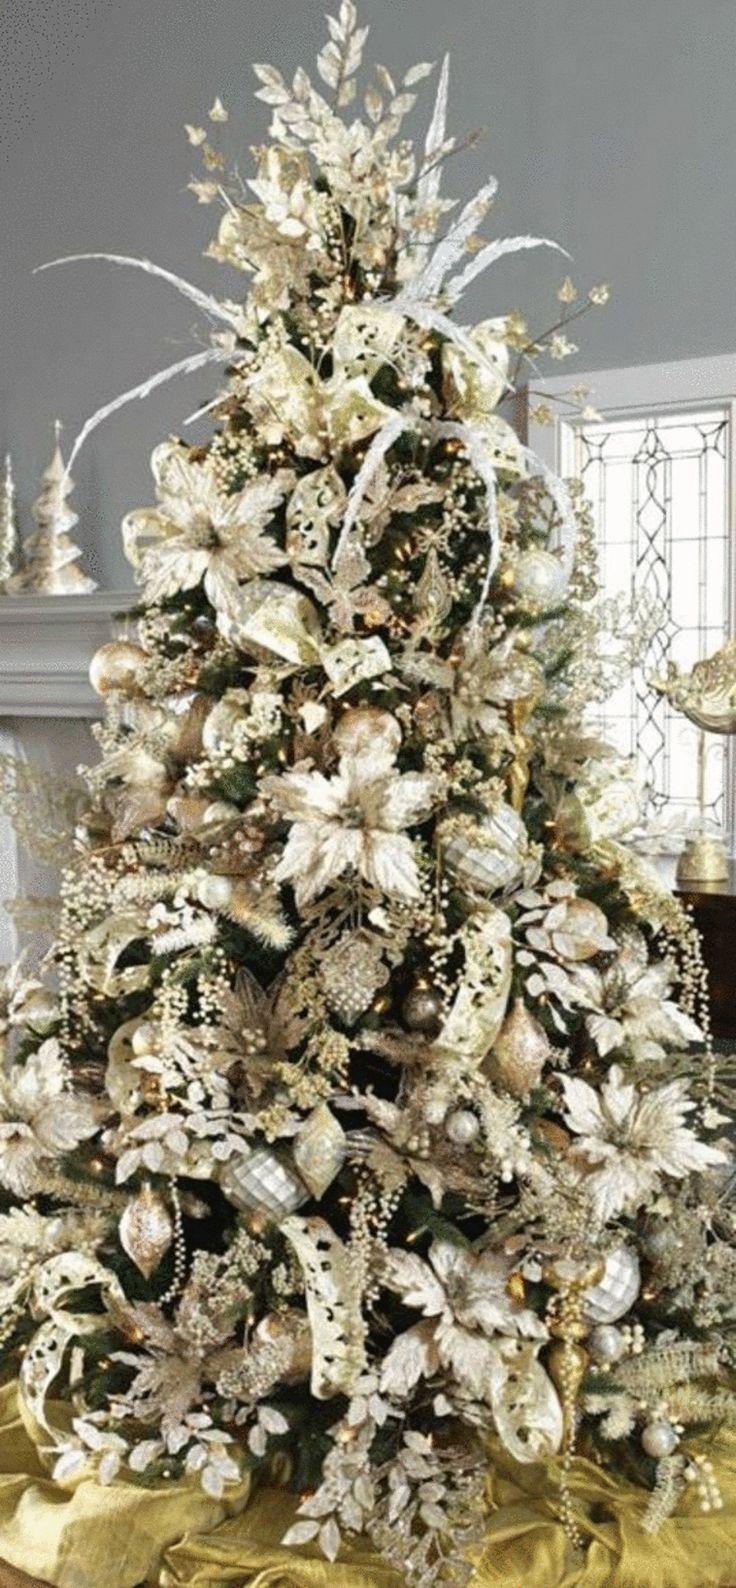 .@DinnerByDesign The perfect tree